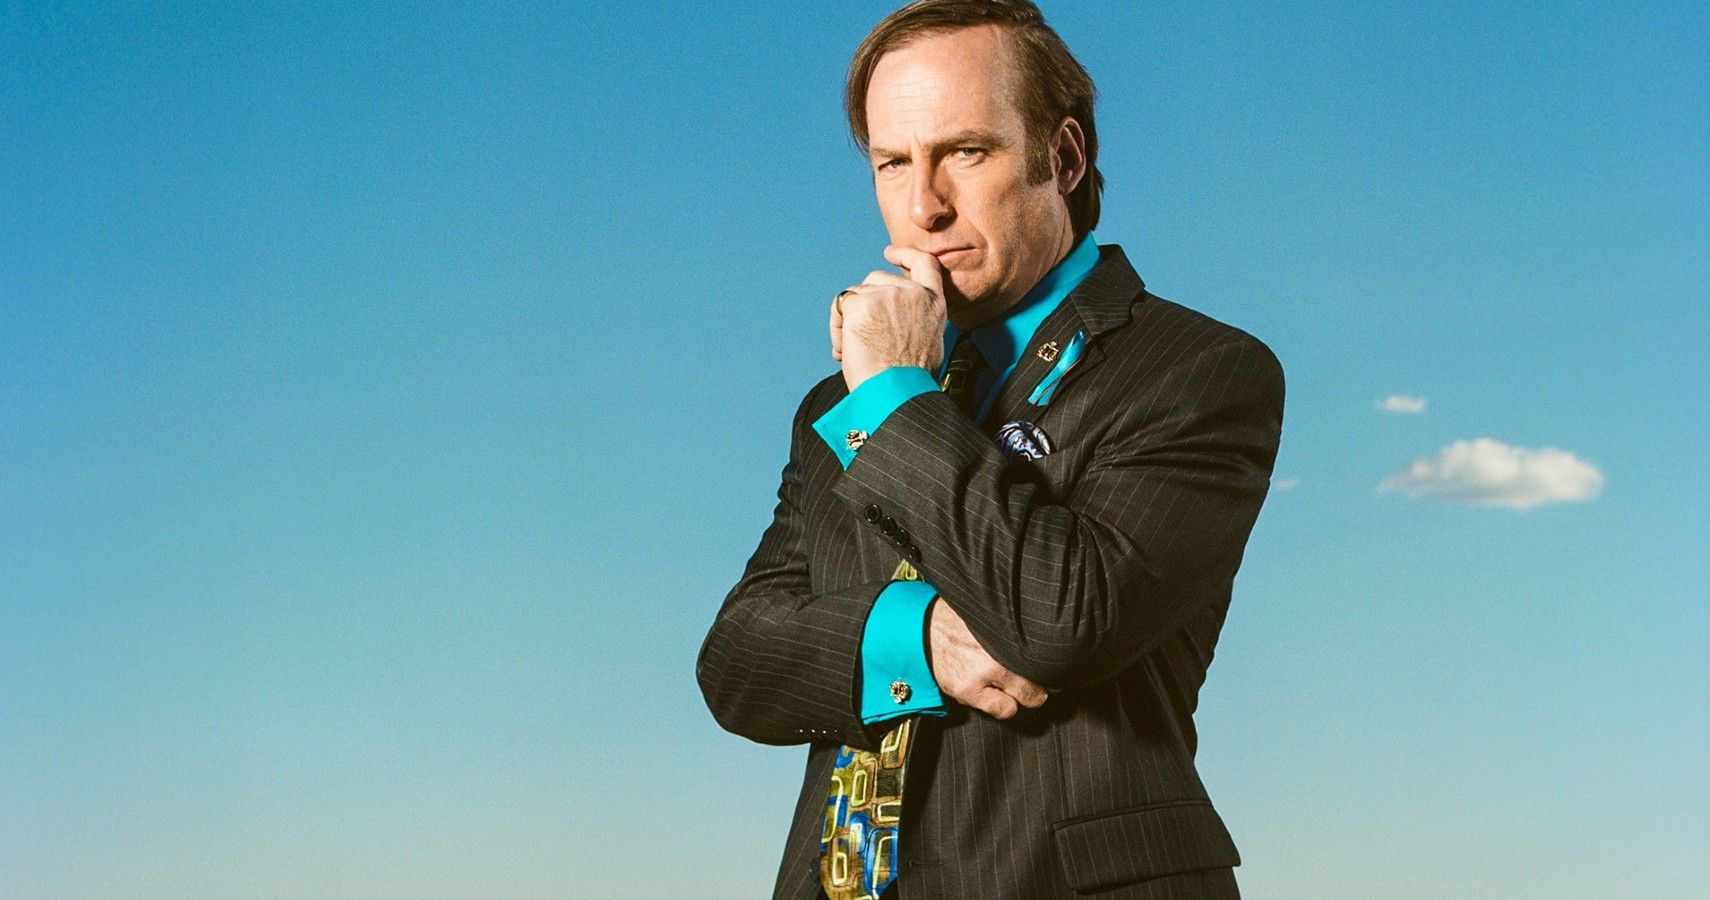 Better Call Saul: 10 Predictions For The Final Season